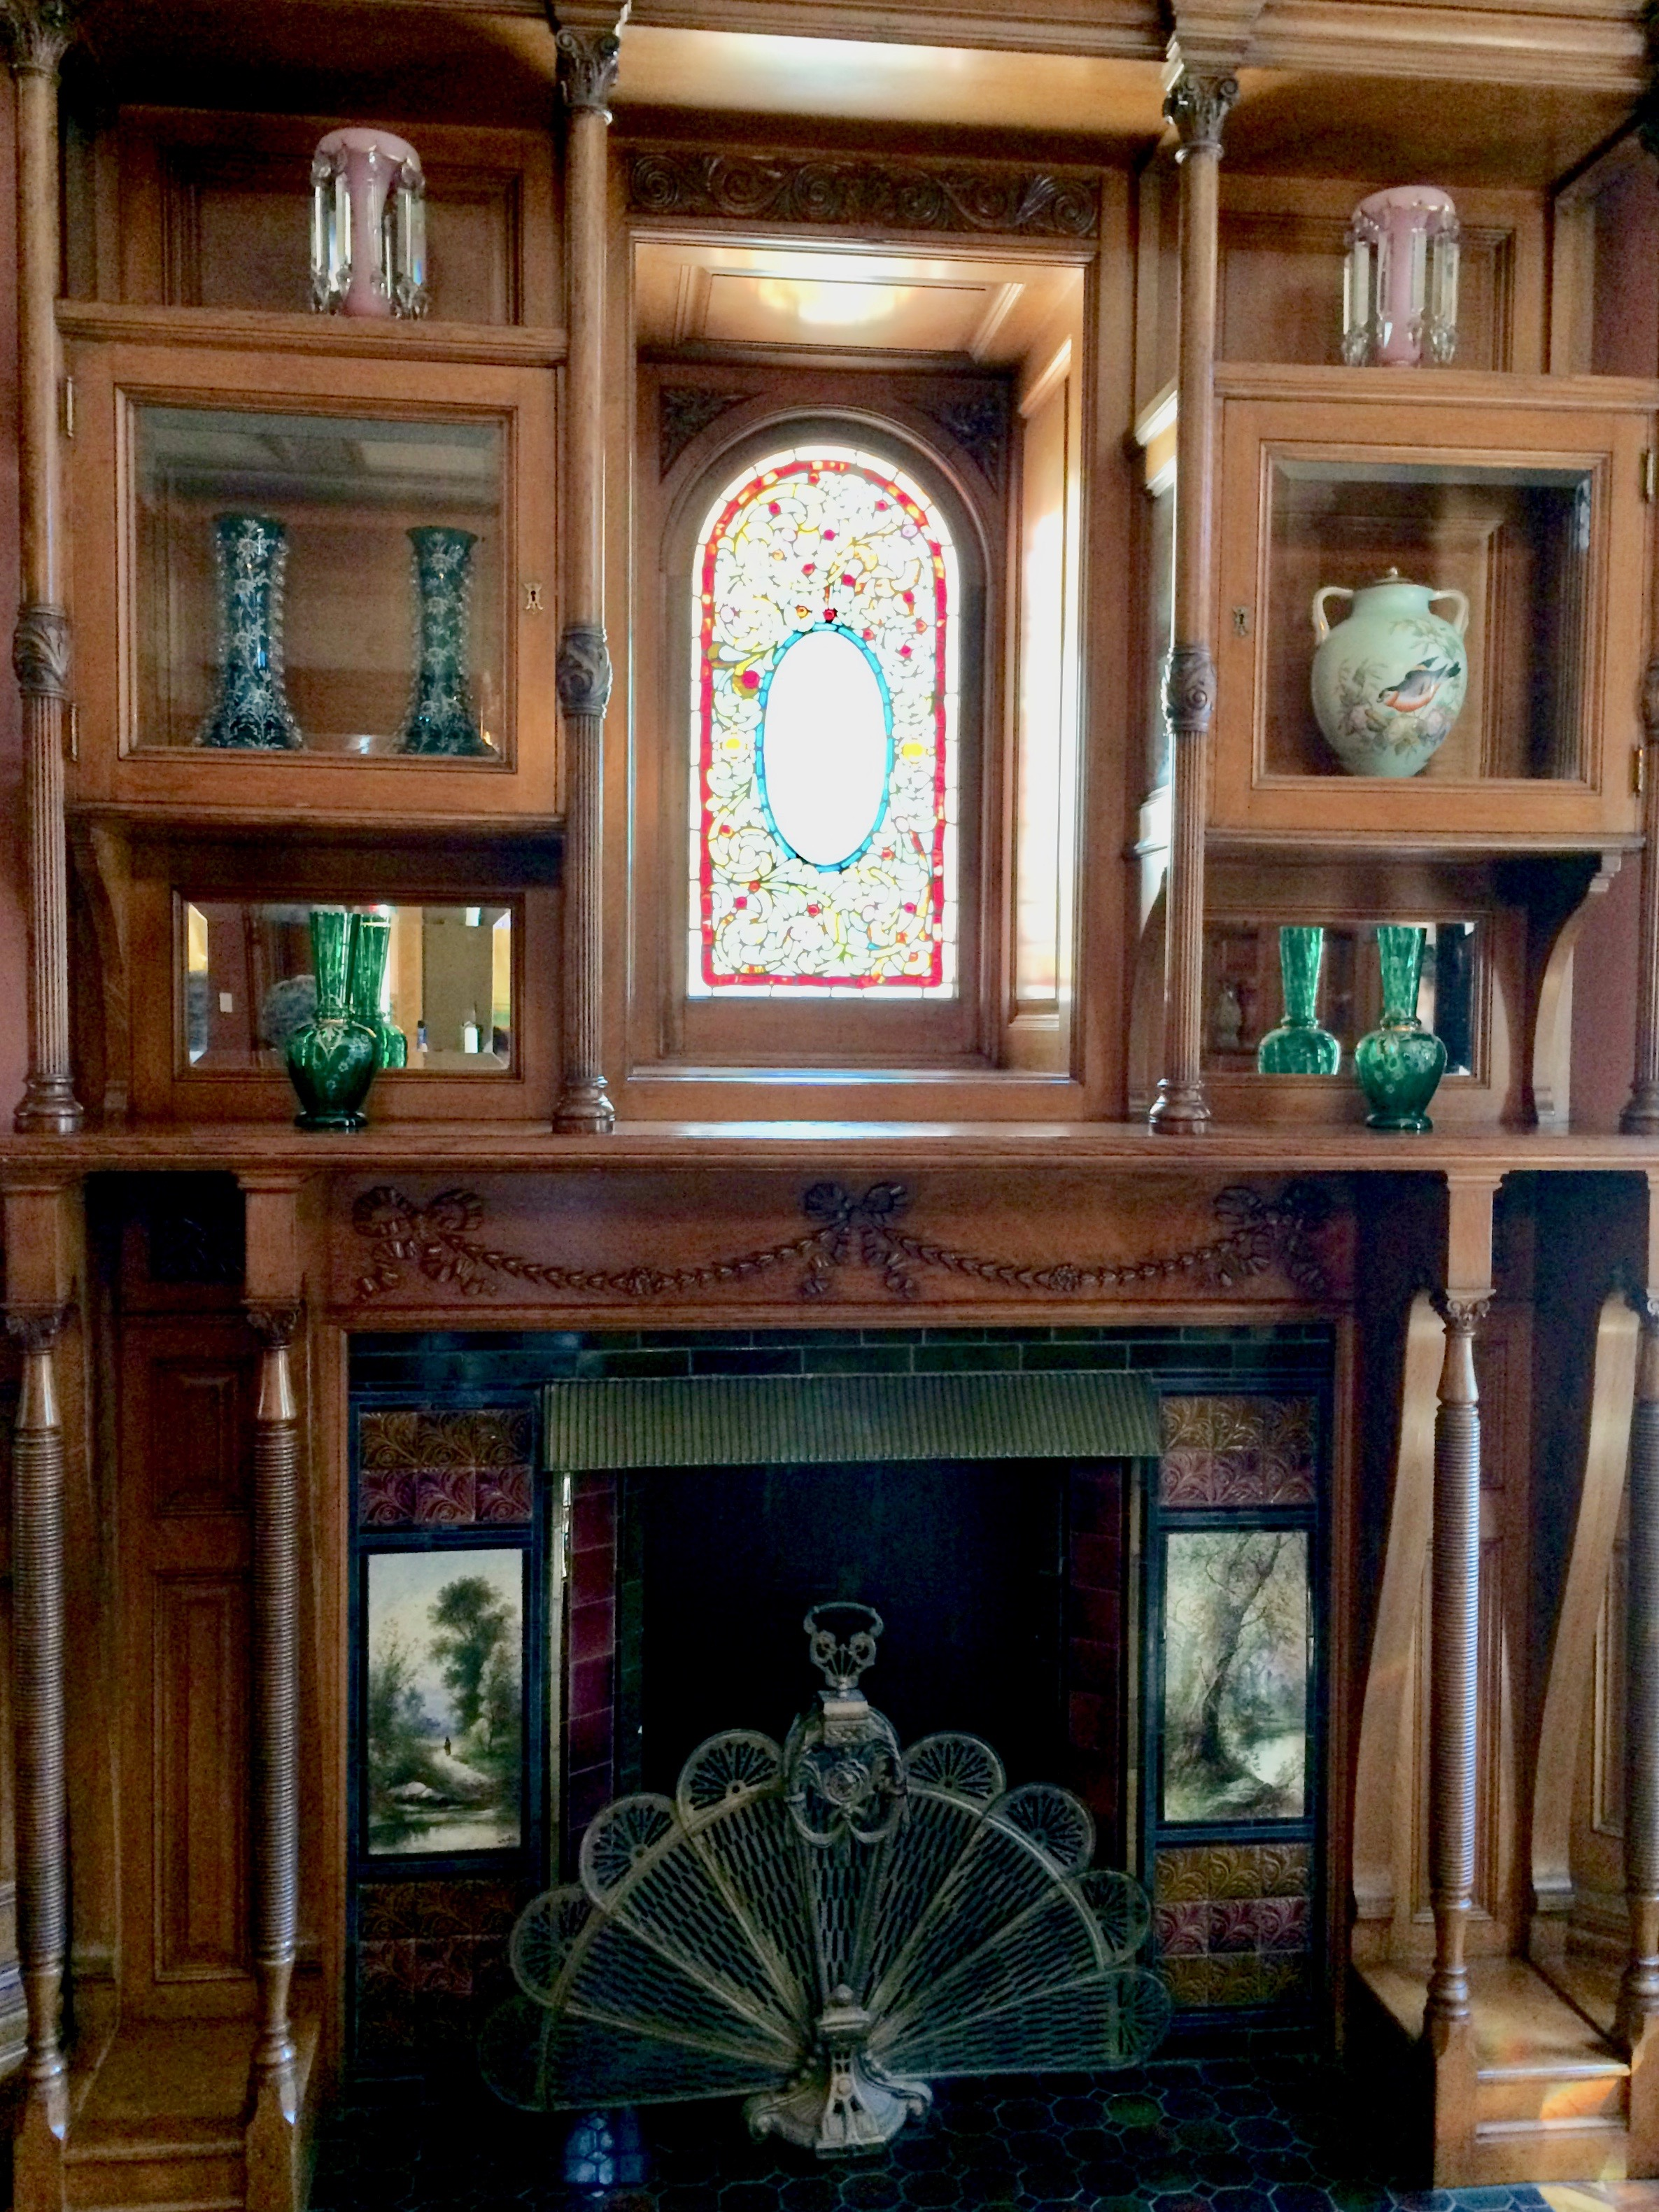 One of 17 fireplaces